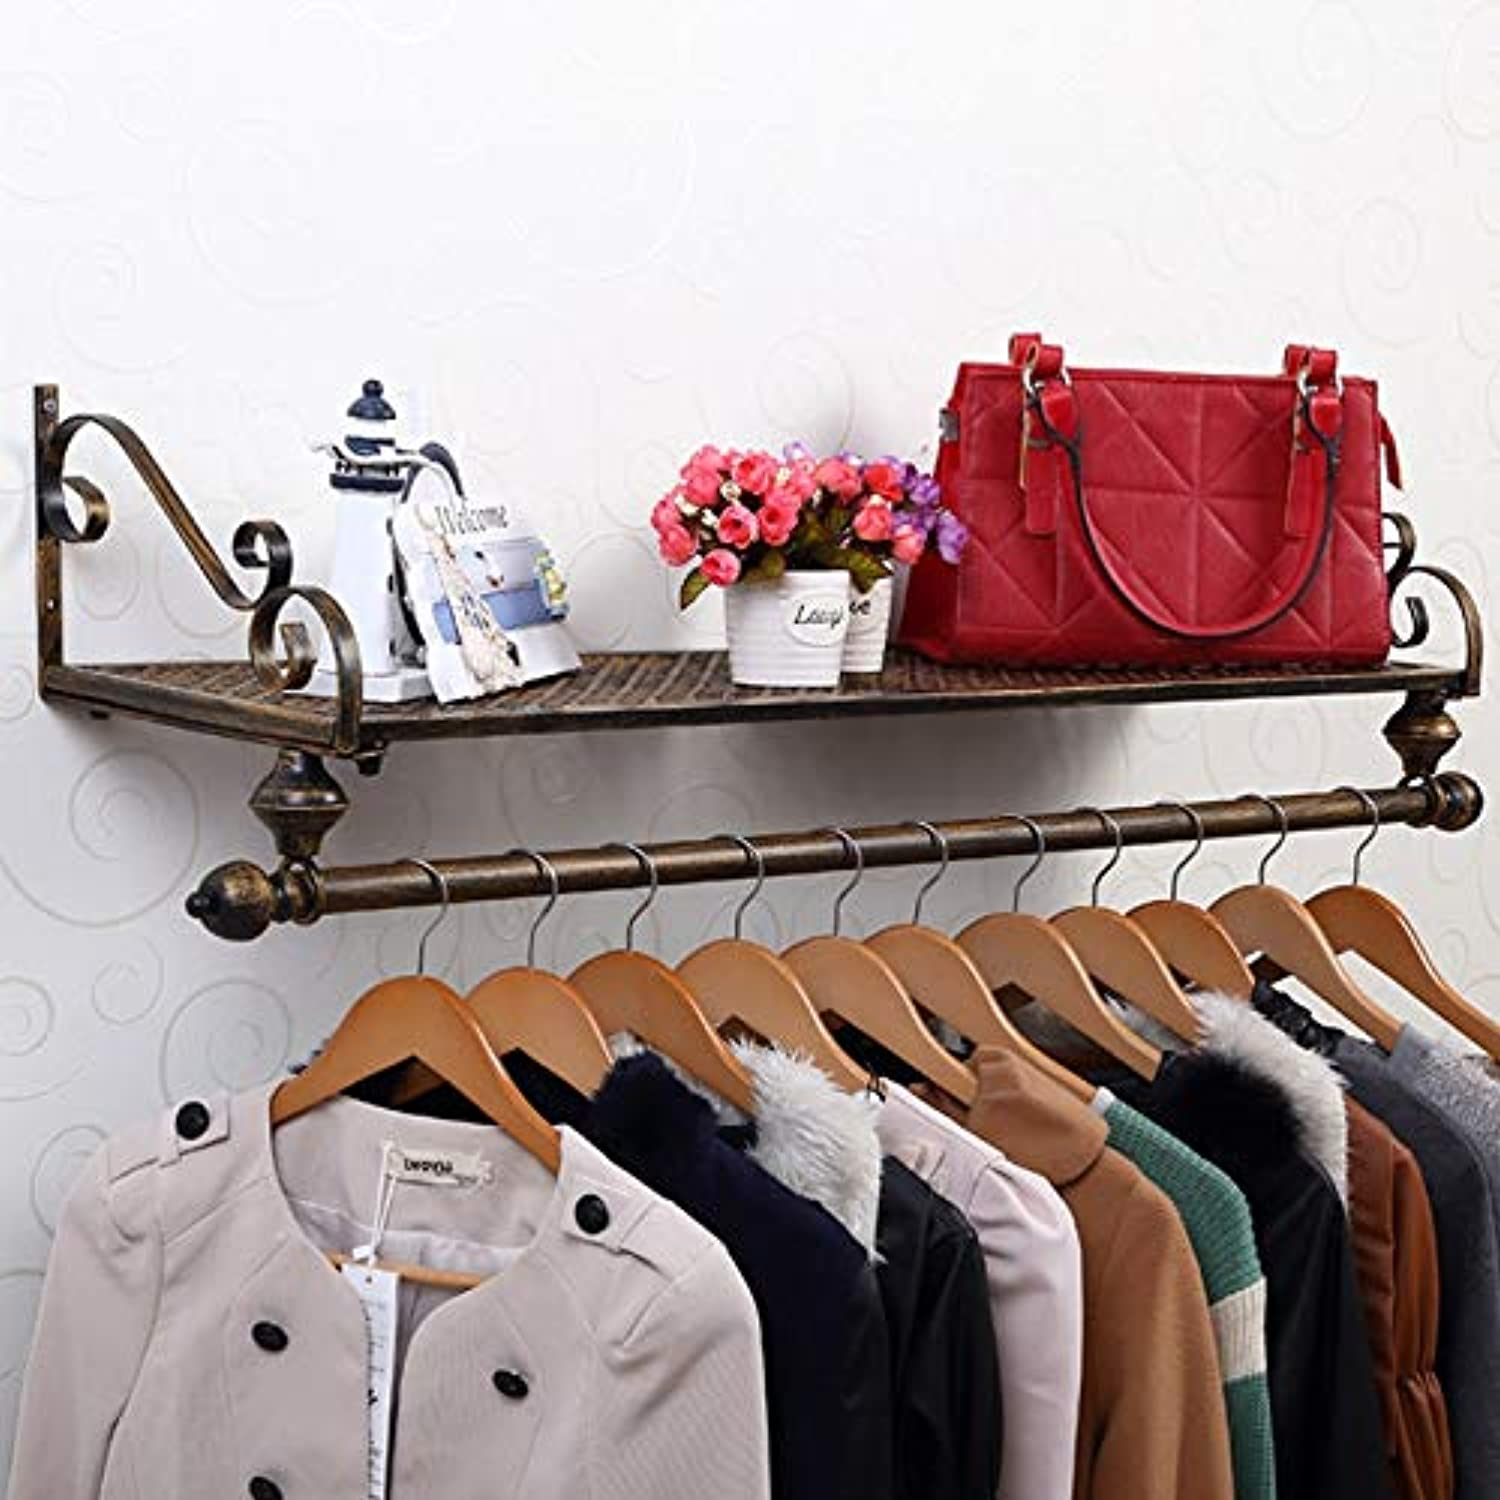 WFFXLL Iron Coat Rack Garment Hanger Wall Mounted, Single Rail Clothes Holder and Storage Floating Shelf for Entryway Hallway Bedroom Bathroom Coat Rack (color   Bronze, Size   100x28cm)